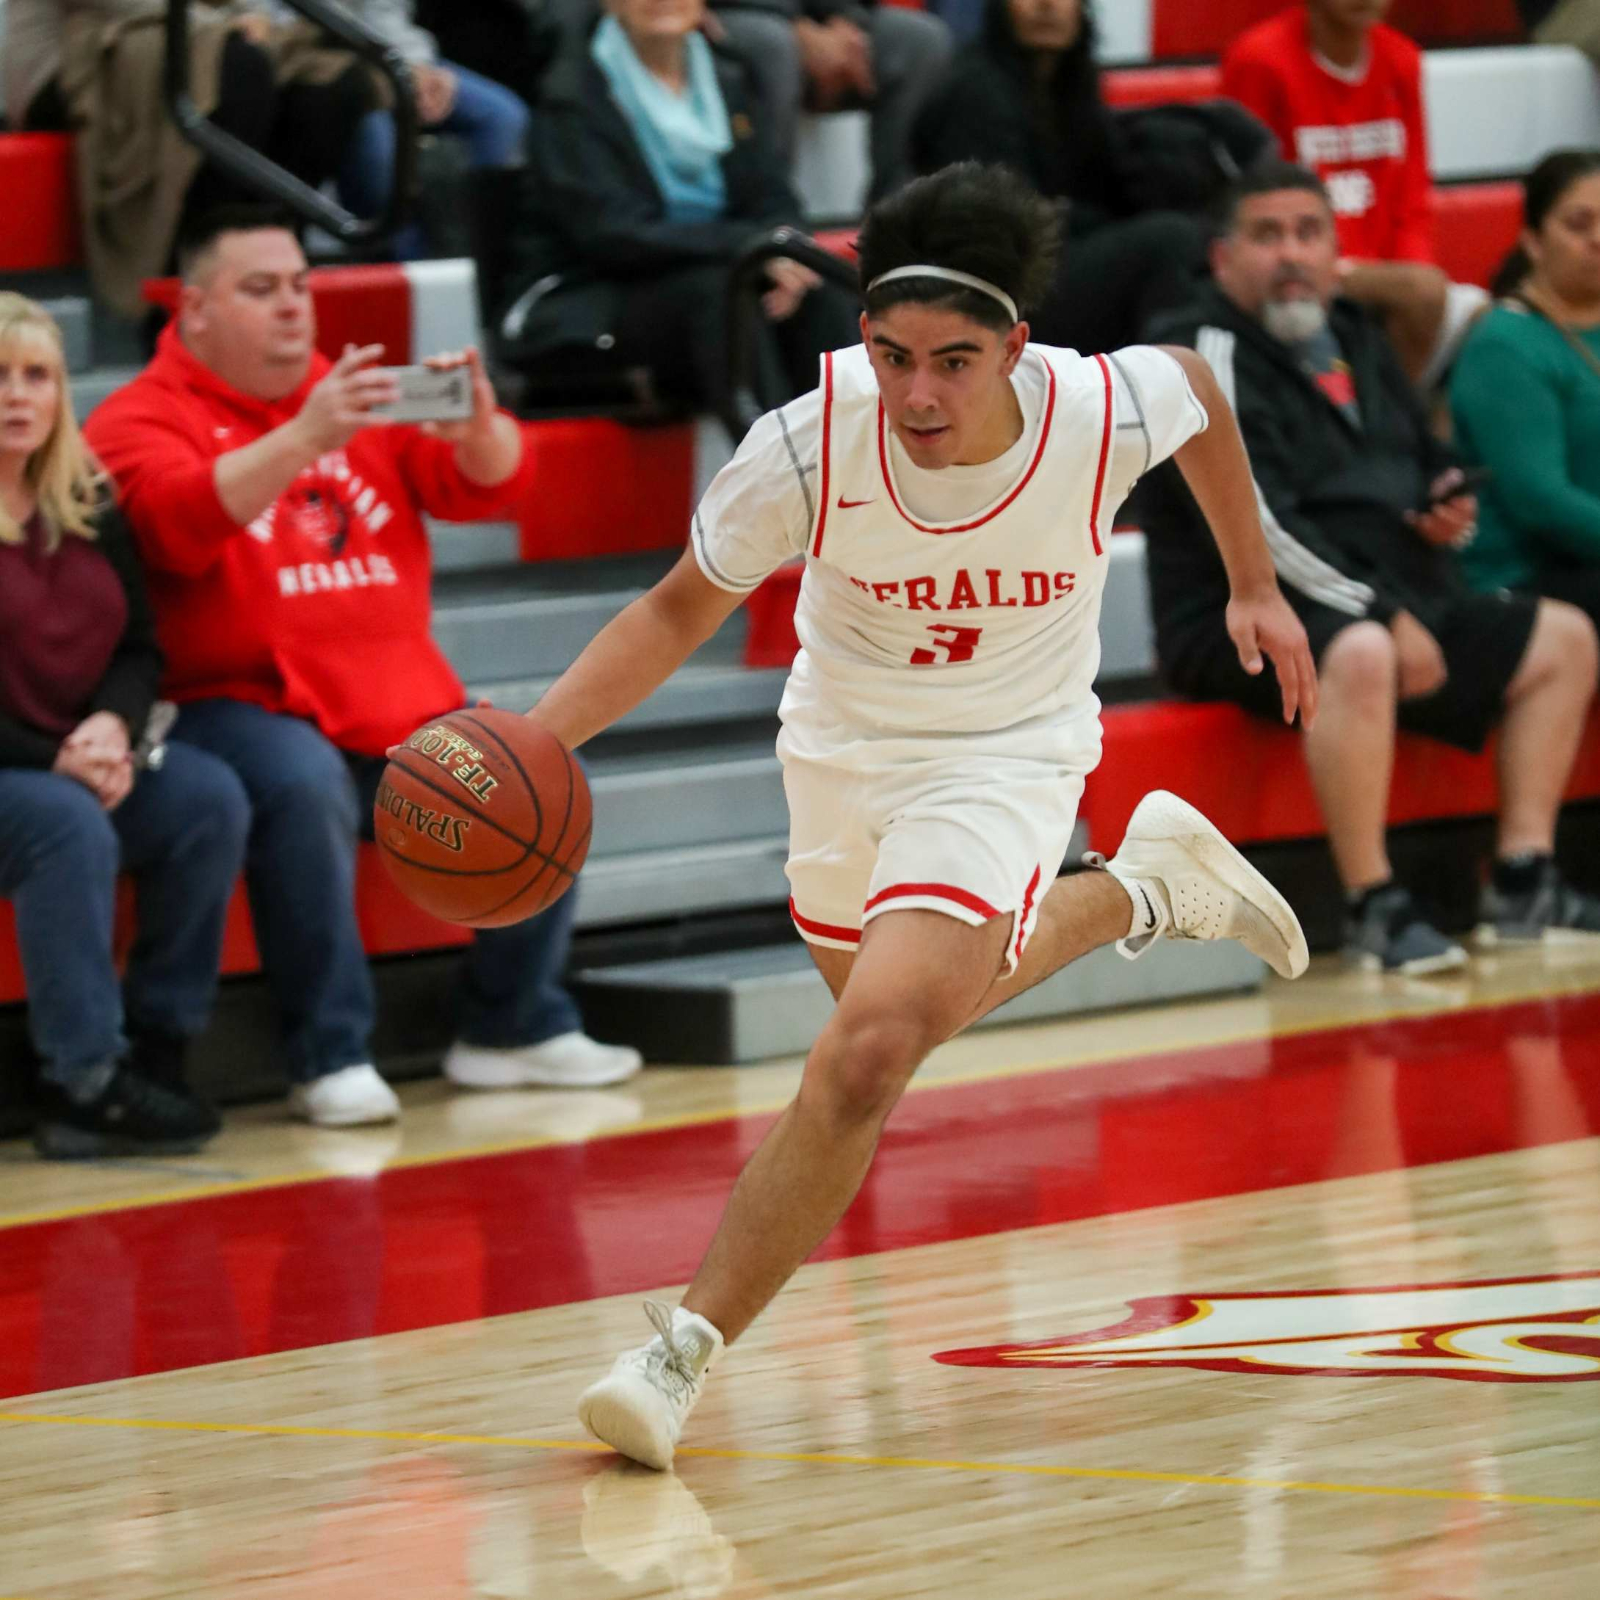 WCHS Boys Varsity Basketball vs. California High School (Game Images 2 of 2)